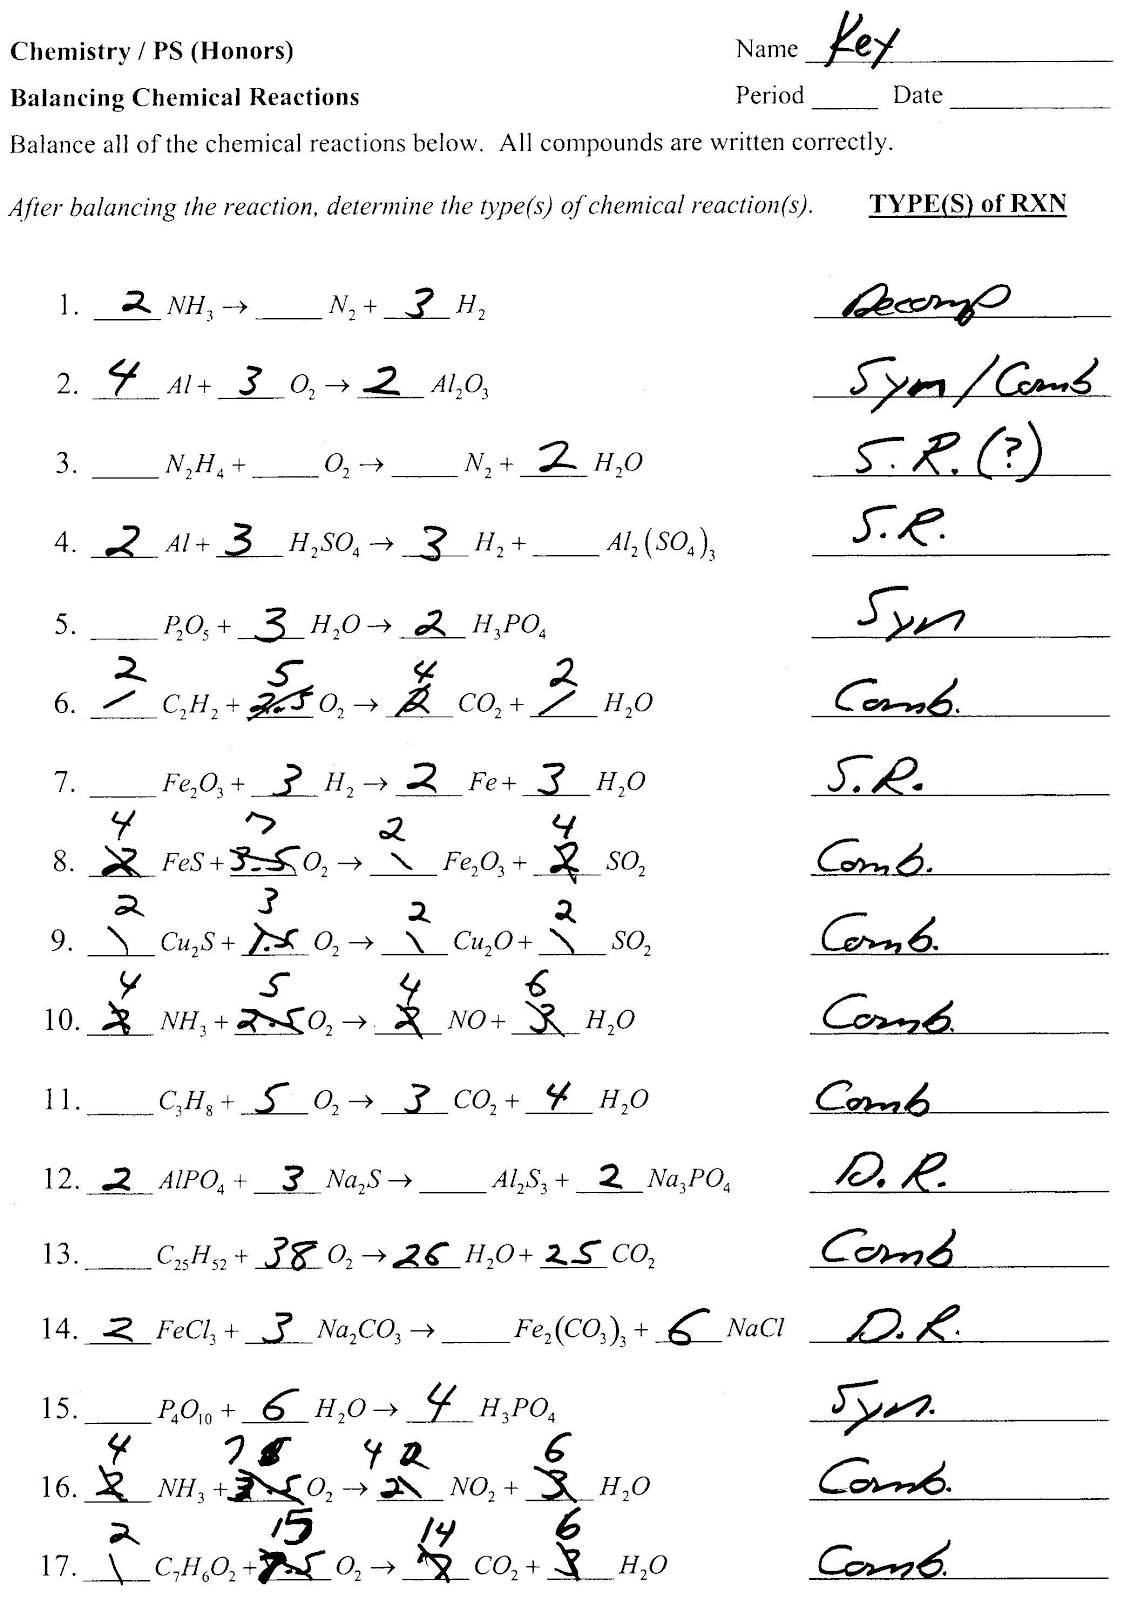 Mr Brueckners Chemistry Class HHS 201112 February 2012 – Balancing Equations Worksheet 1